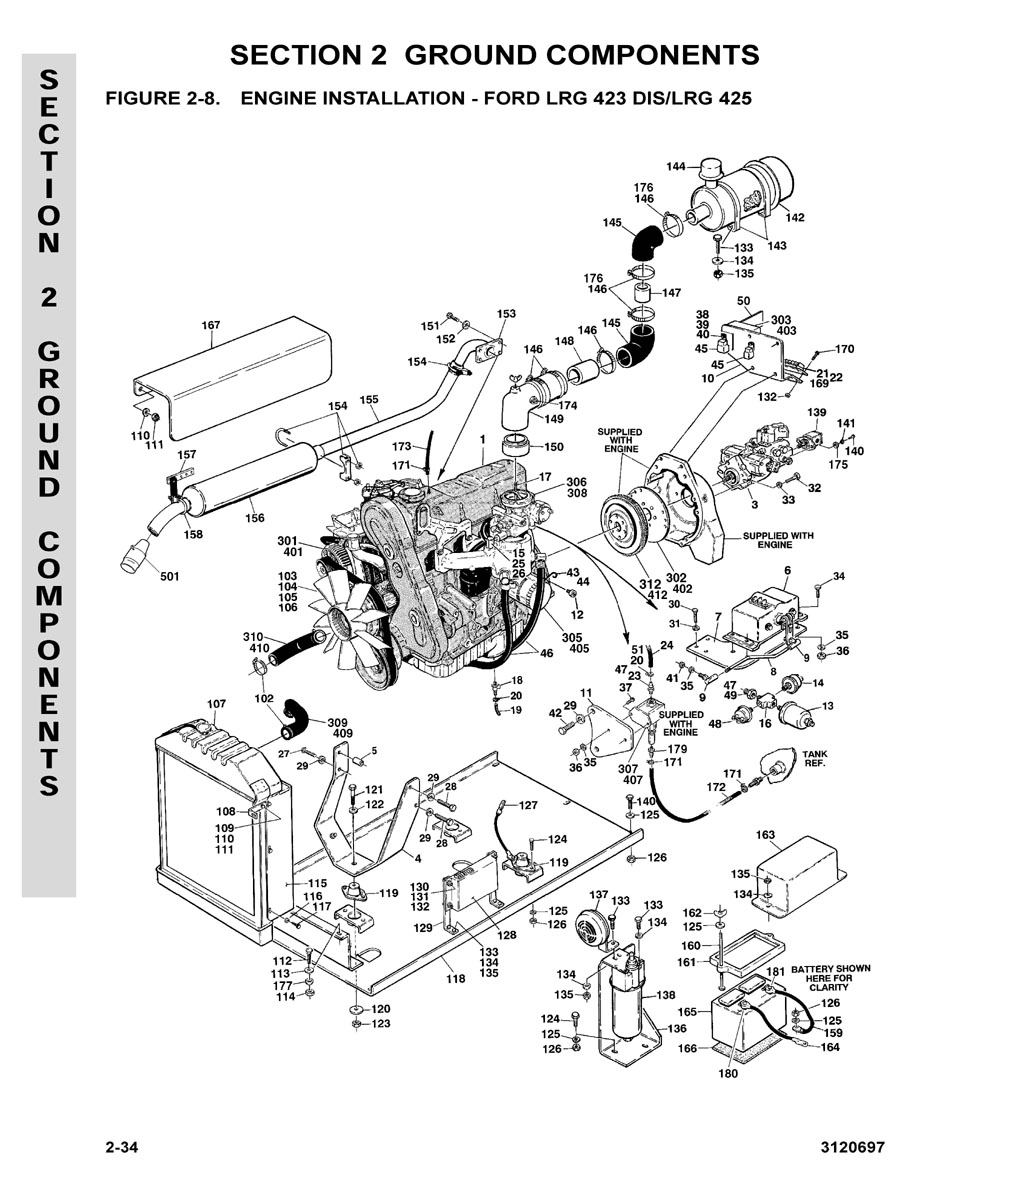 Construction Equipment Parts Jlg From Gcironcom Diagram Thermostat Engine Car And Component